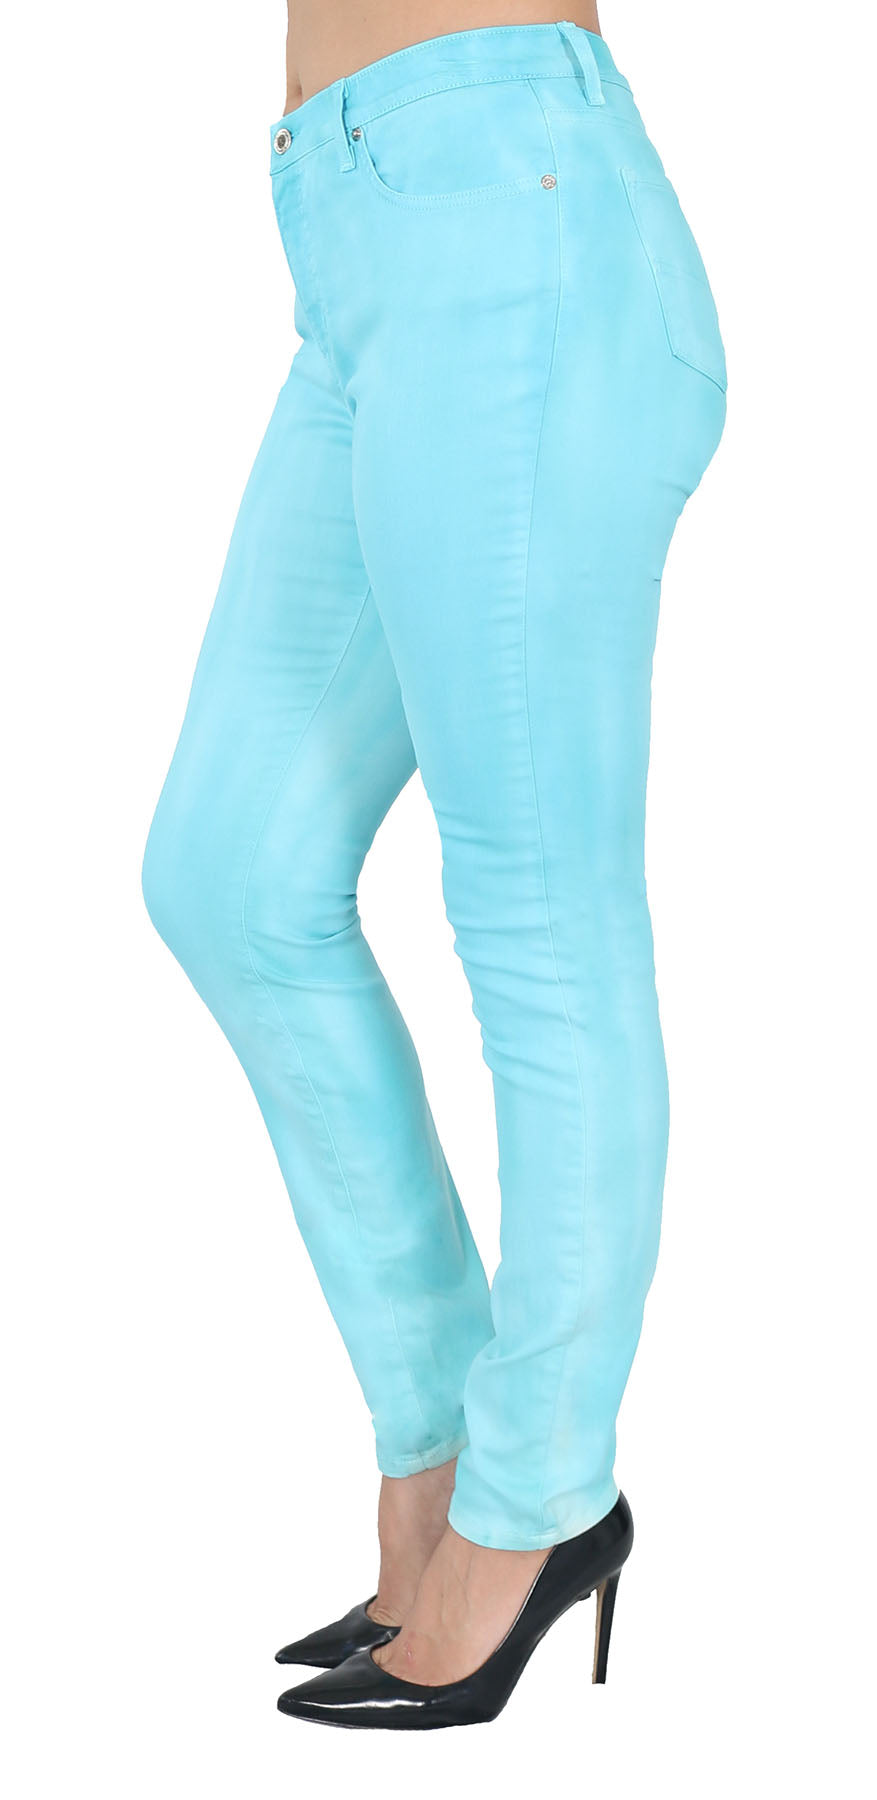 TrueSlim™ Textured Dyed Aqua Jeggings